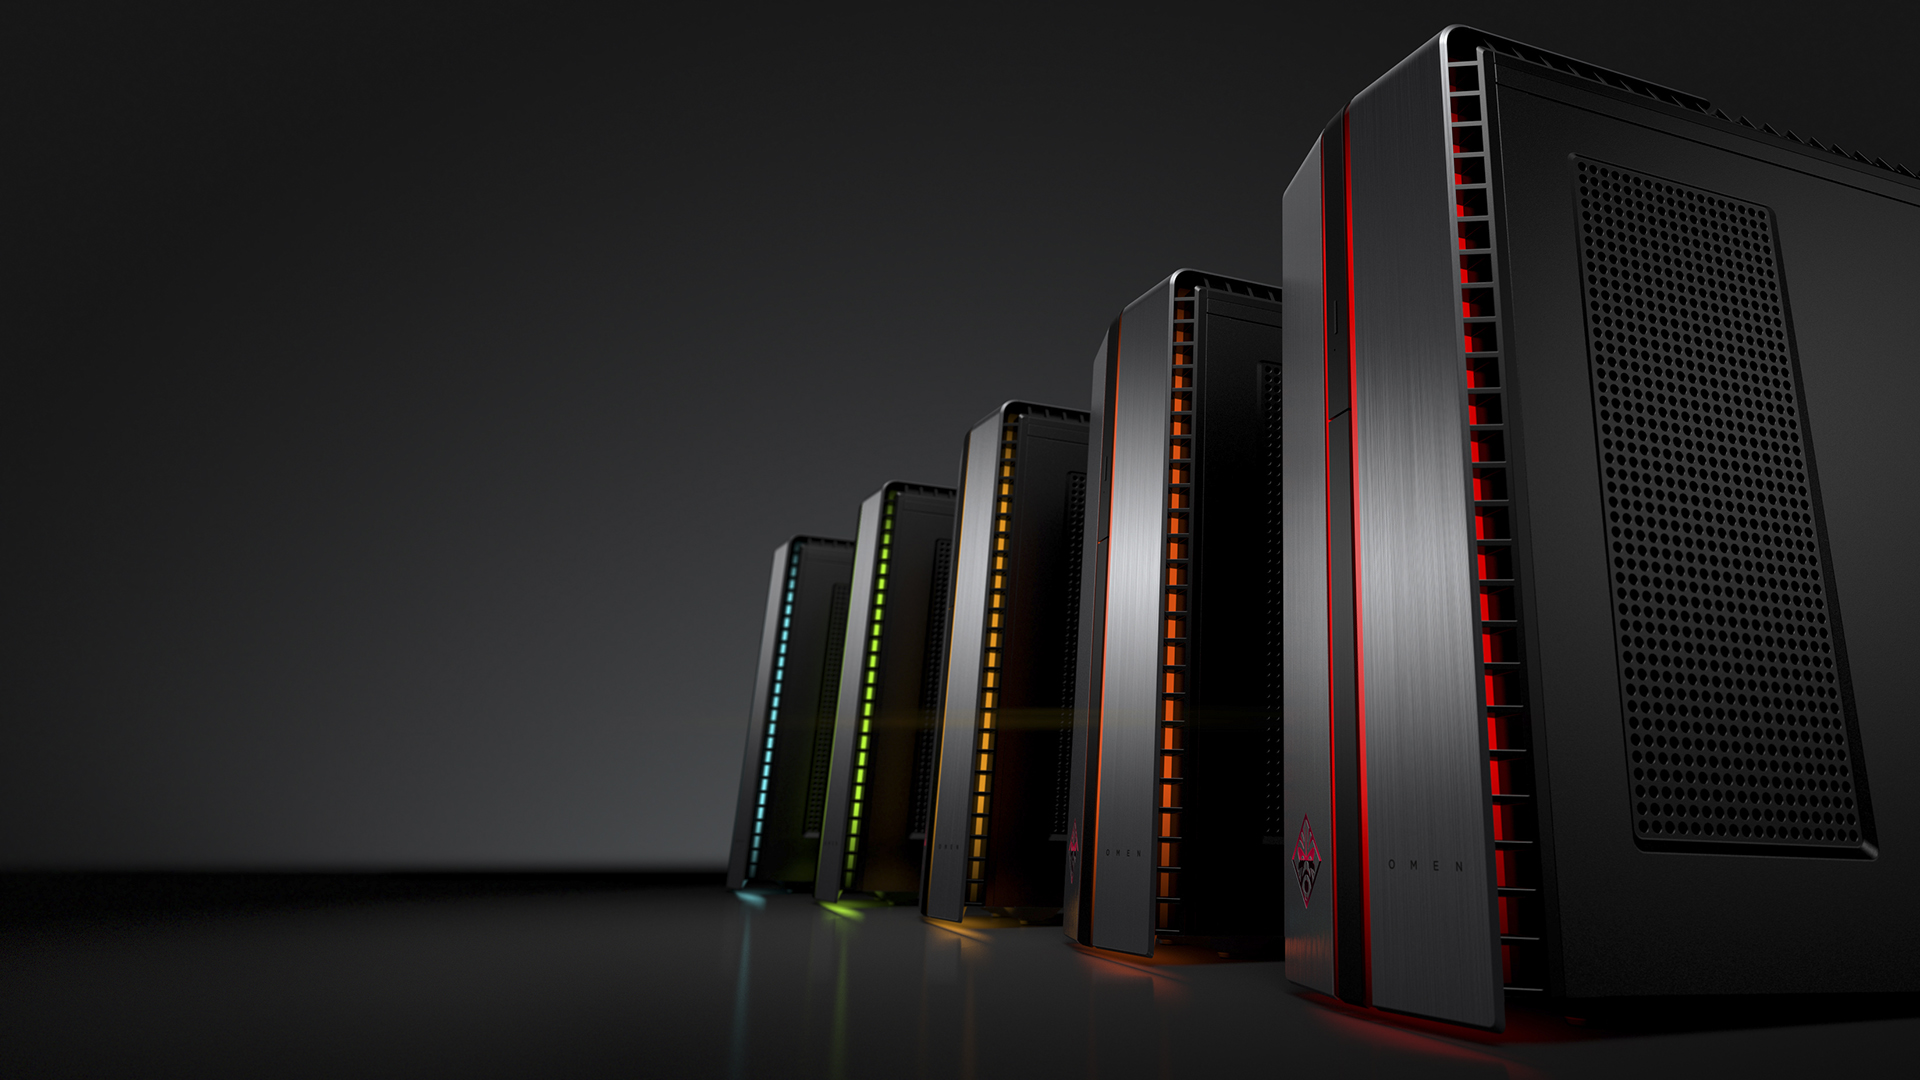 The HP Omen desktop showing off its LED illumination.